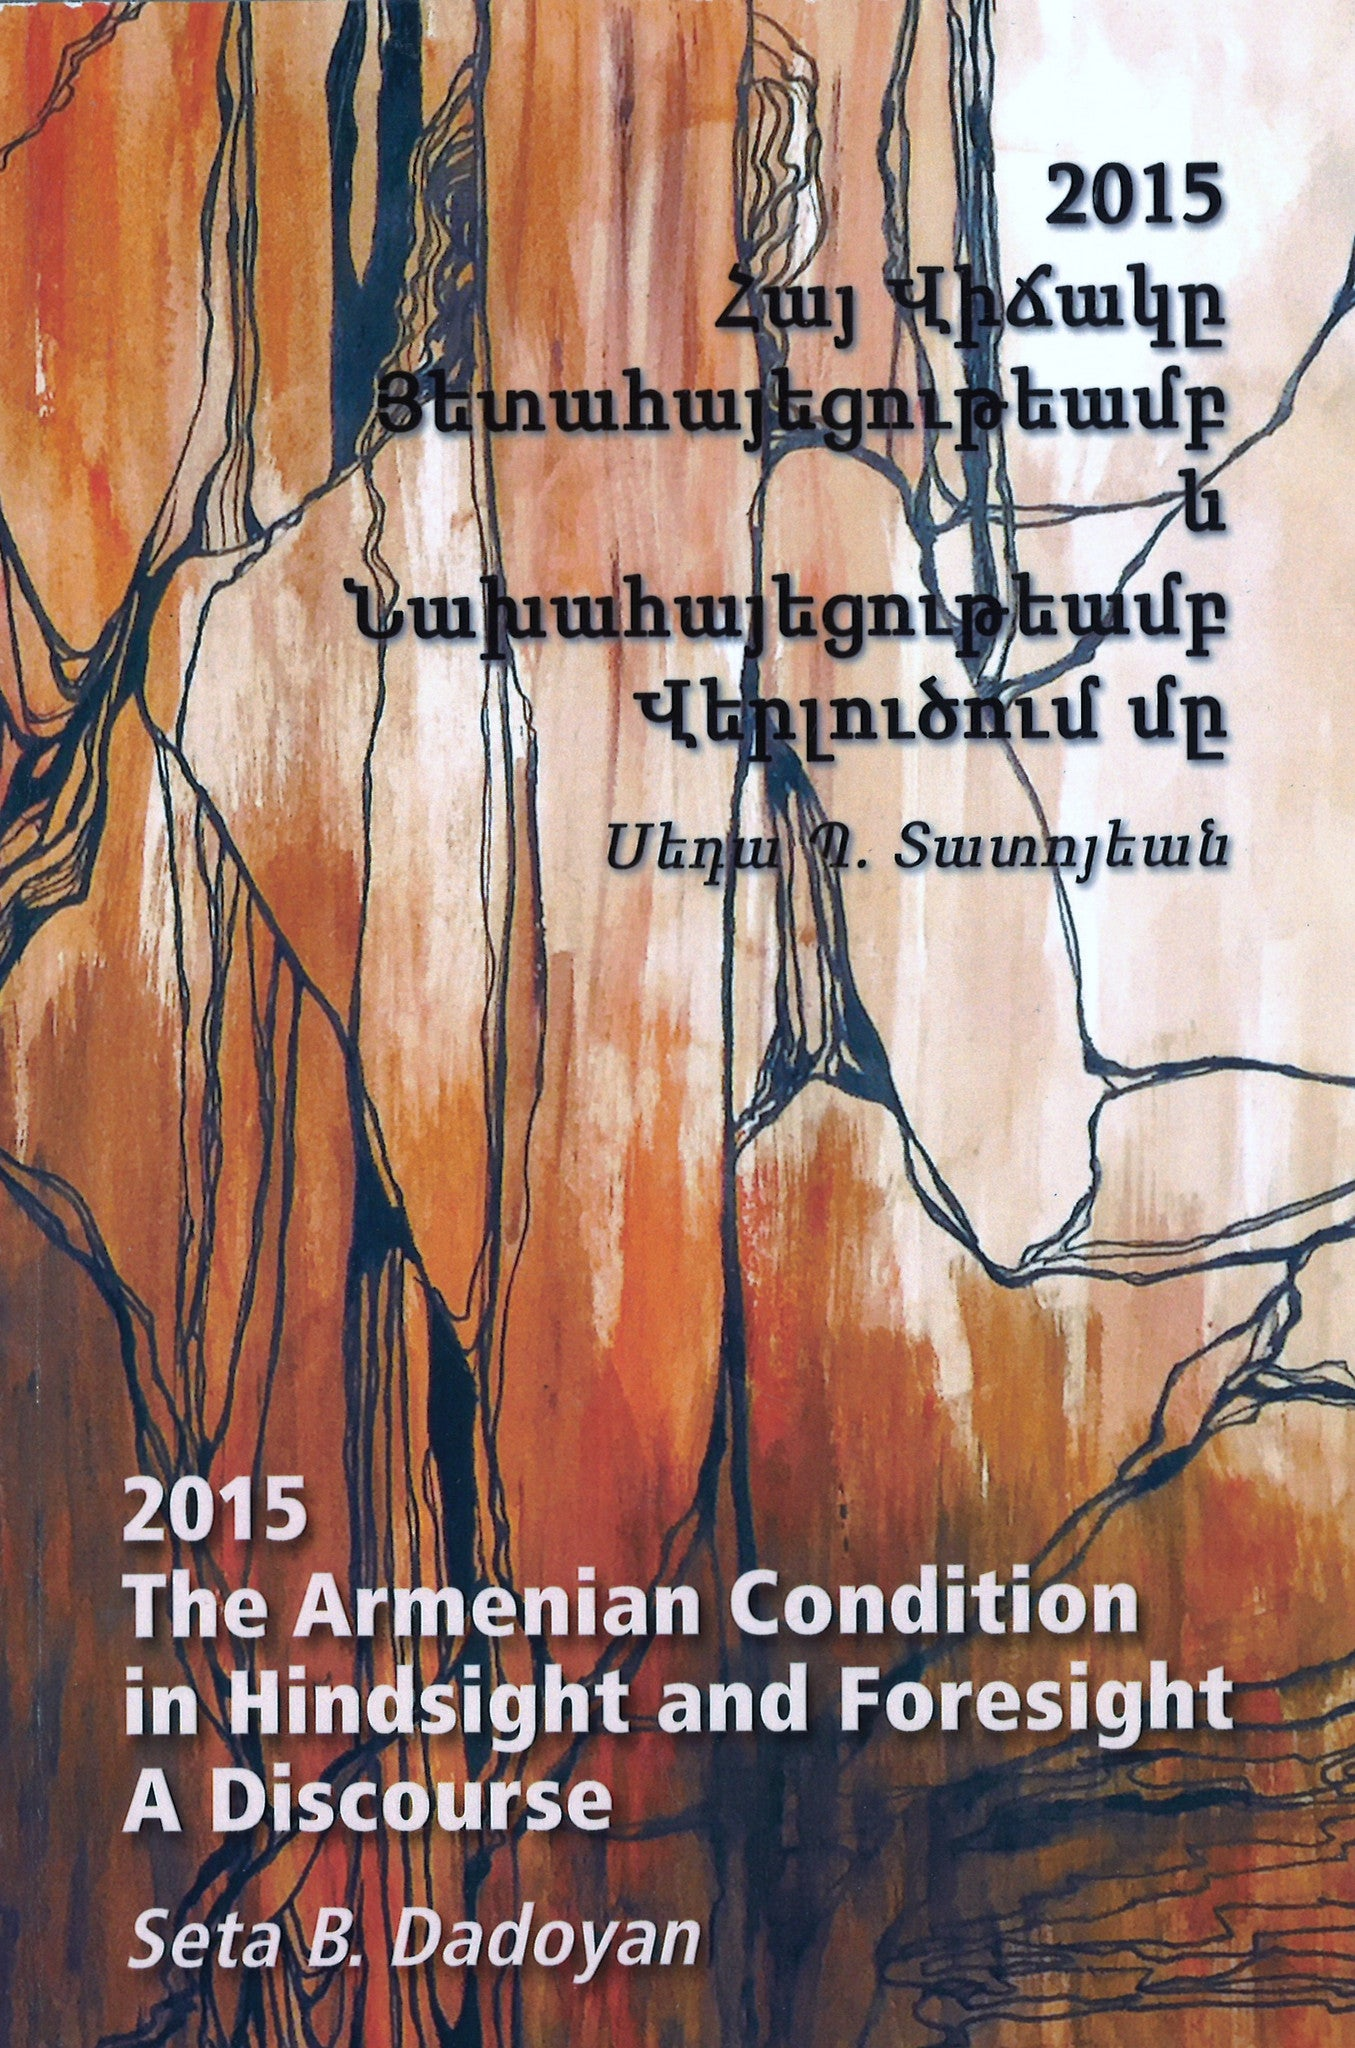 ARMENIAN CONDITION IN HINDSIGHT AND FORESIGHT - A DISCOURSE